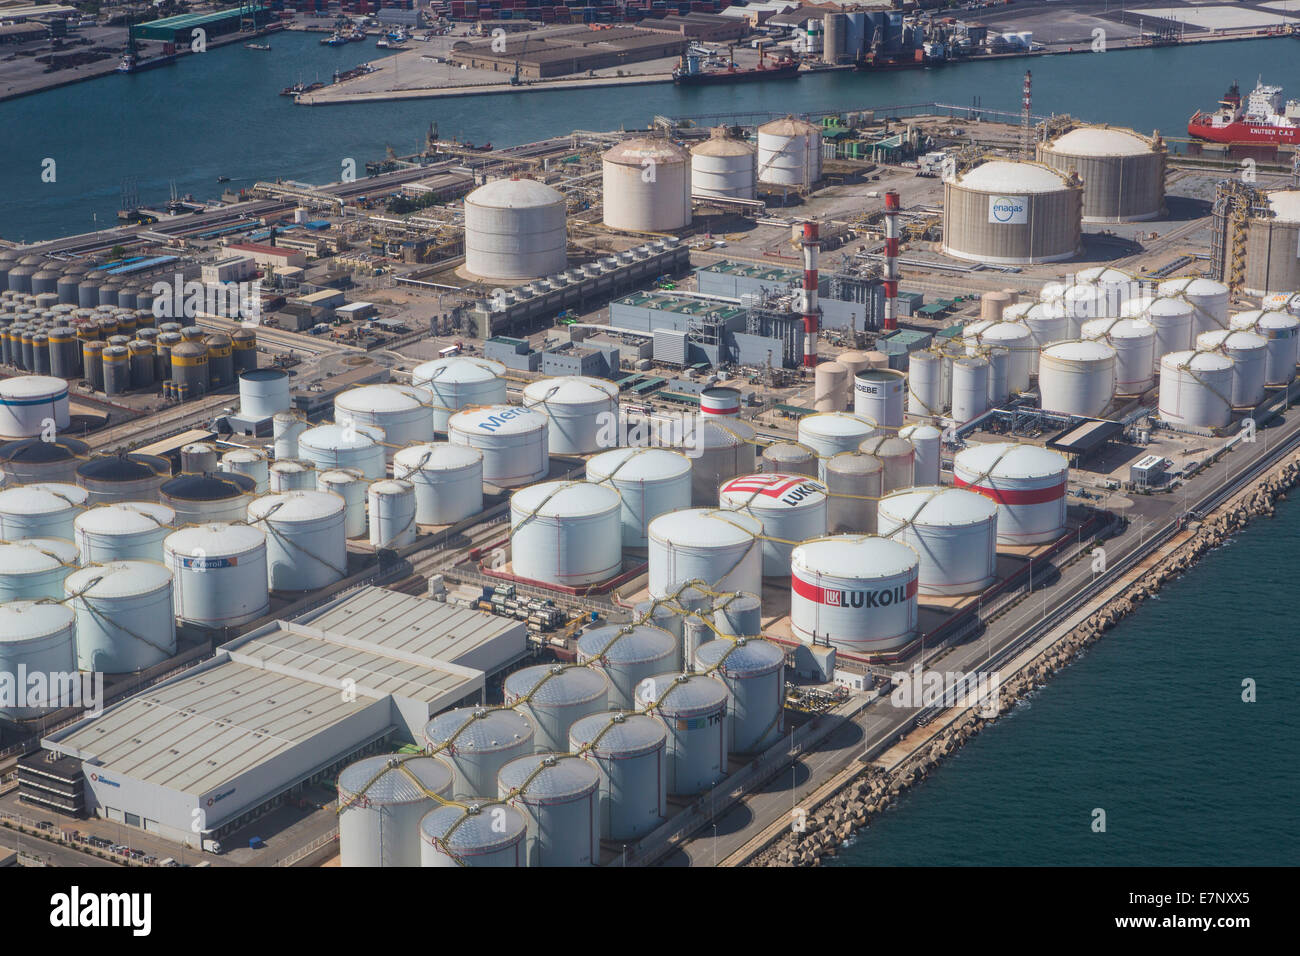 aerial, Barcelona, Catalonia, city, tanks, gas, harbour, industry, panorama, port, Spain, oil, energy - Stock Image